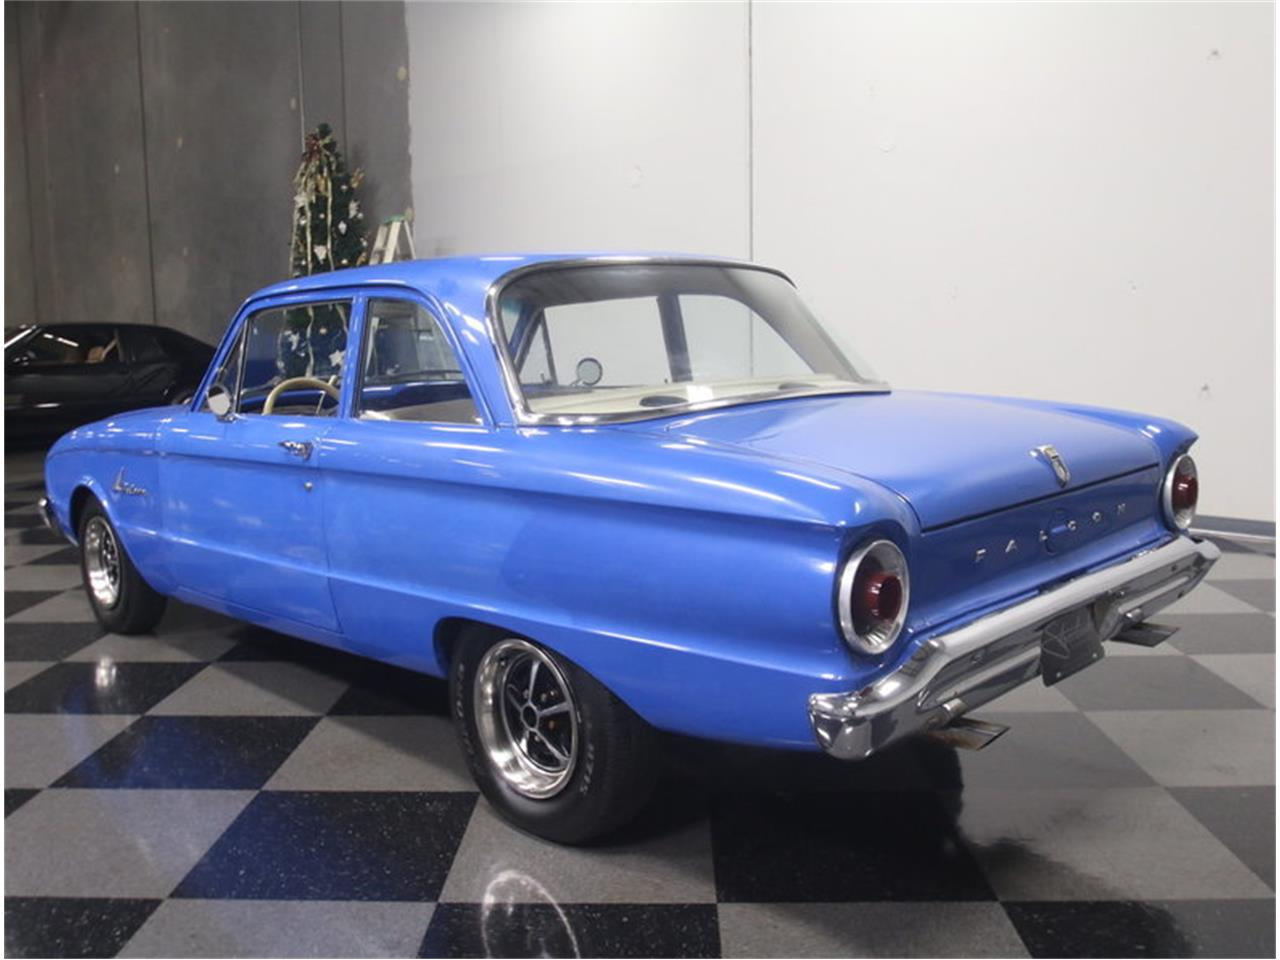 Large Picture of 1962 Ford Falcon - $14,995.00 - MH3Z